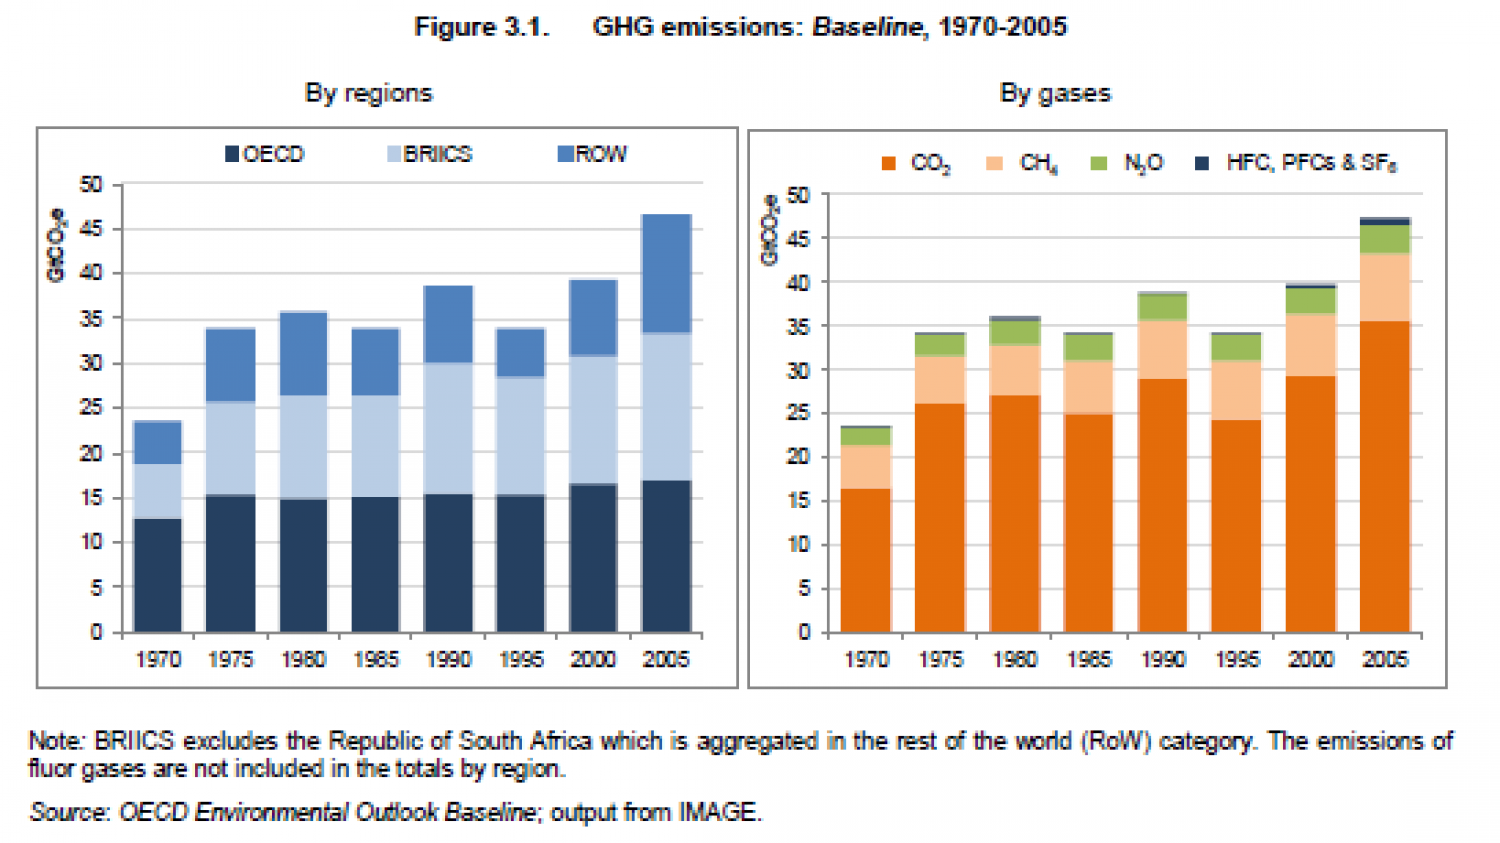 GHG emissions -Baseline, 1970-2005 ( By regions, by gases) Infographic